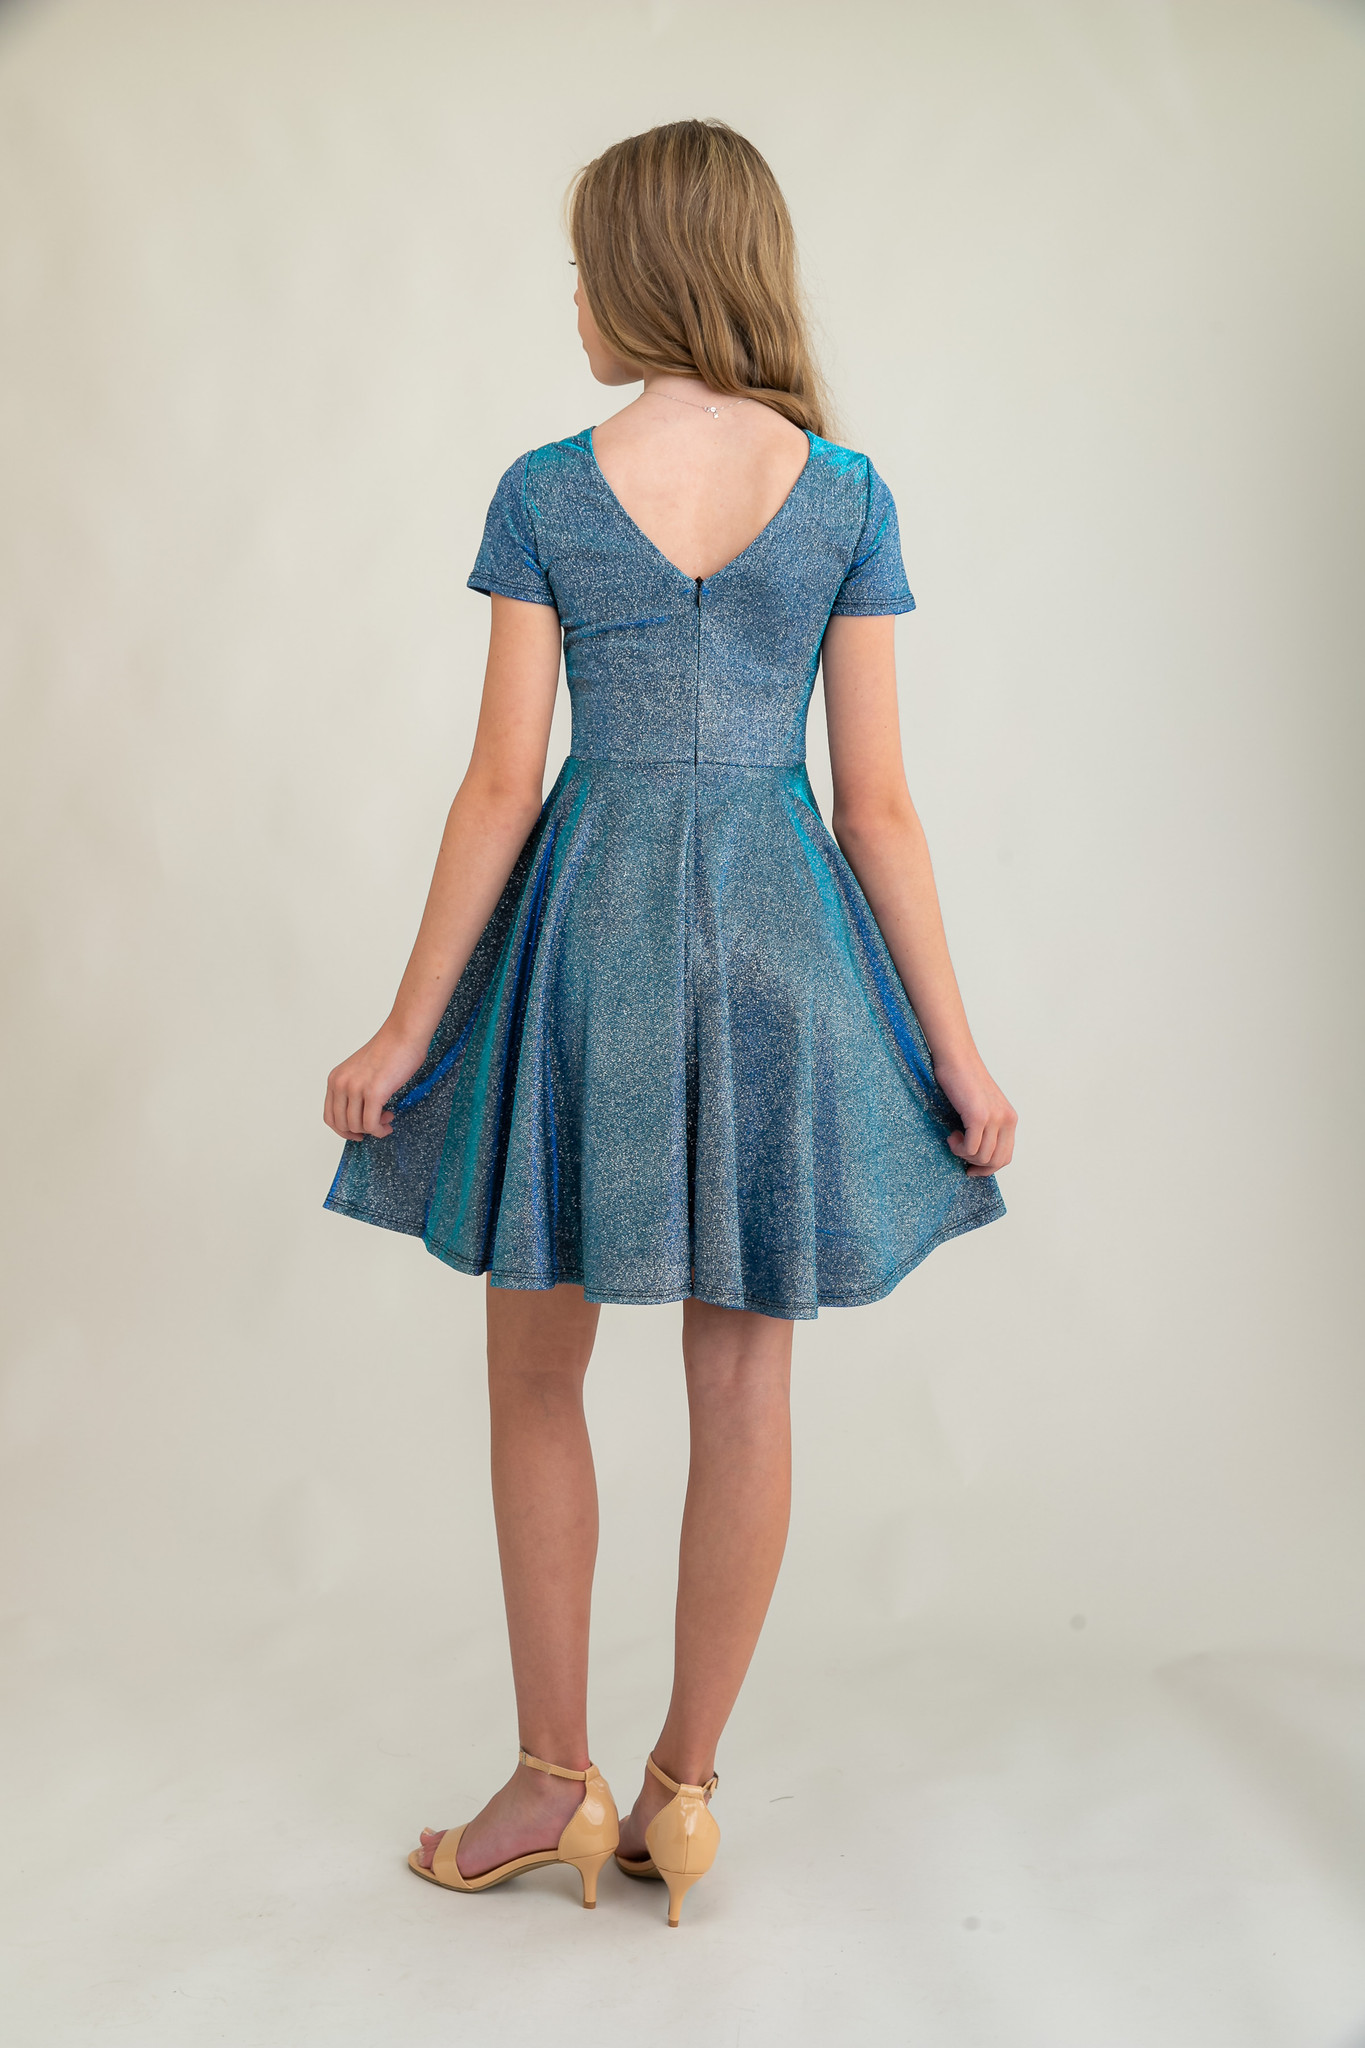 Tween Girls Blue Glitter Short Sleeve Dress in Longer Length back.